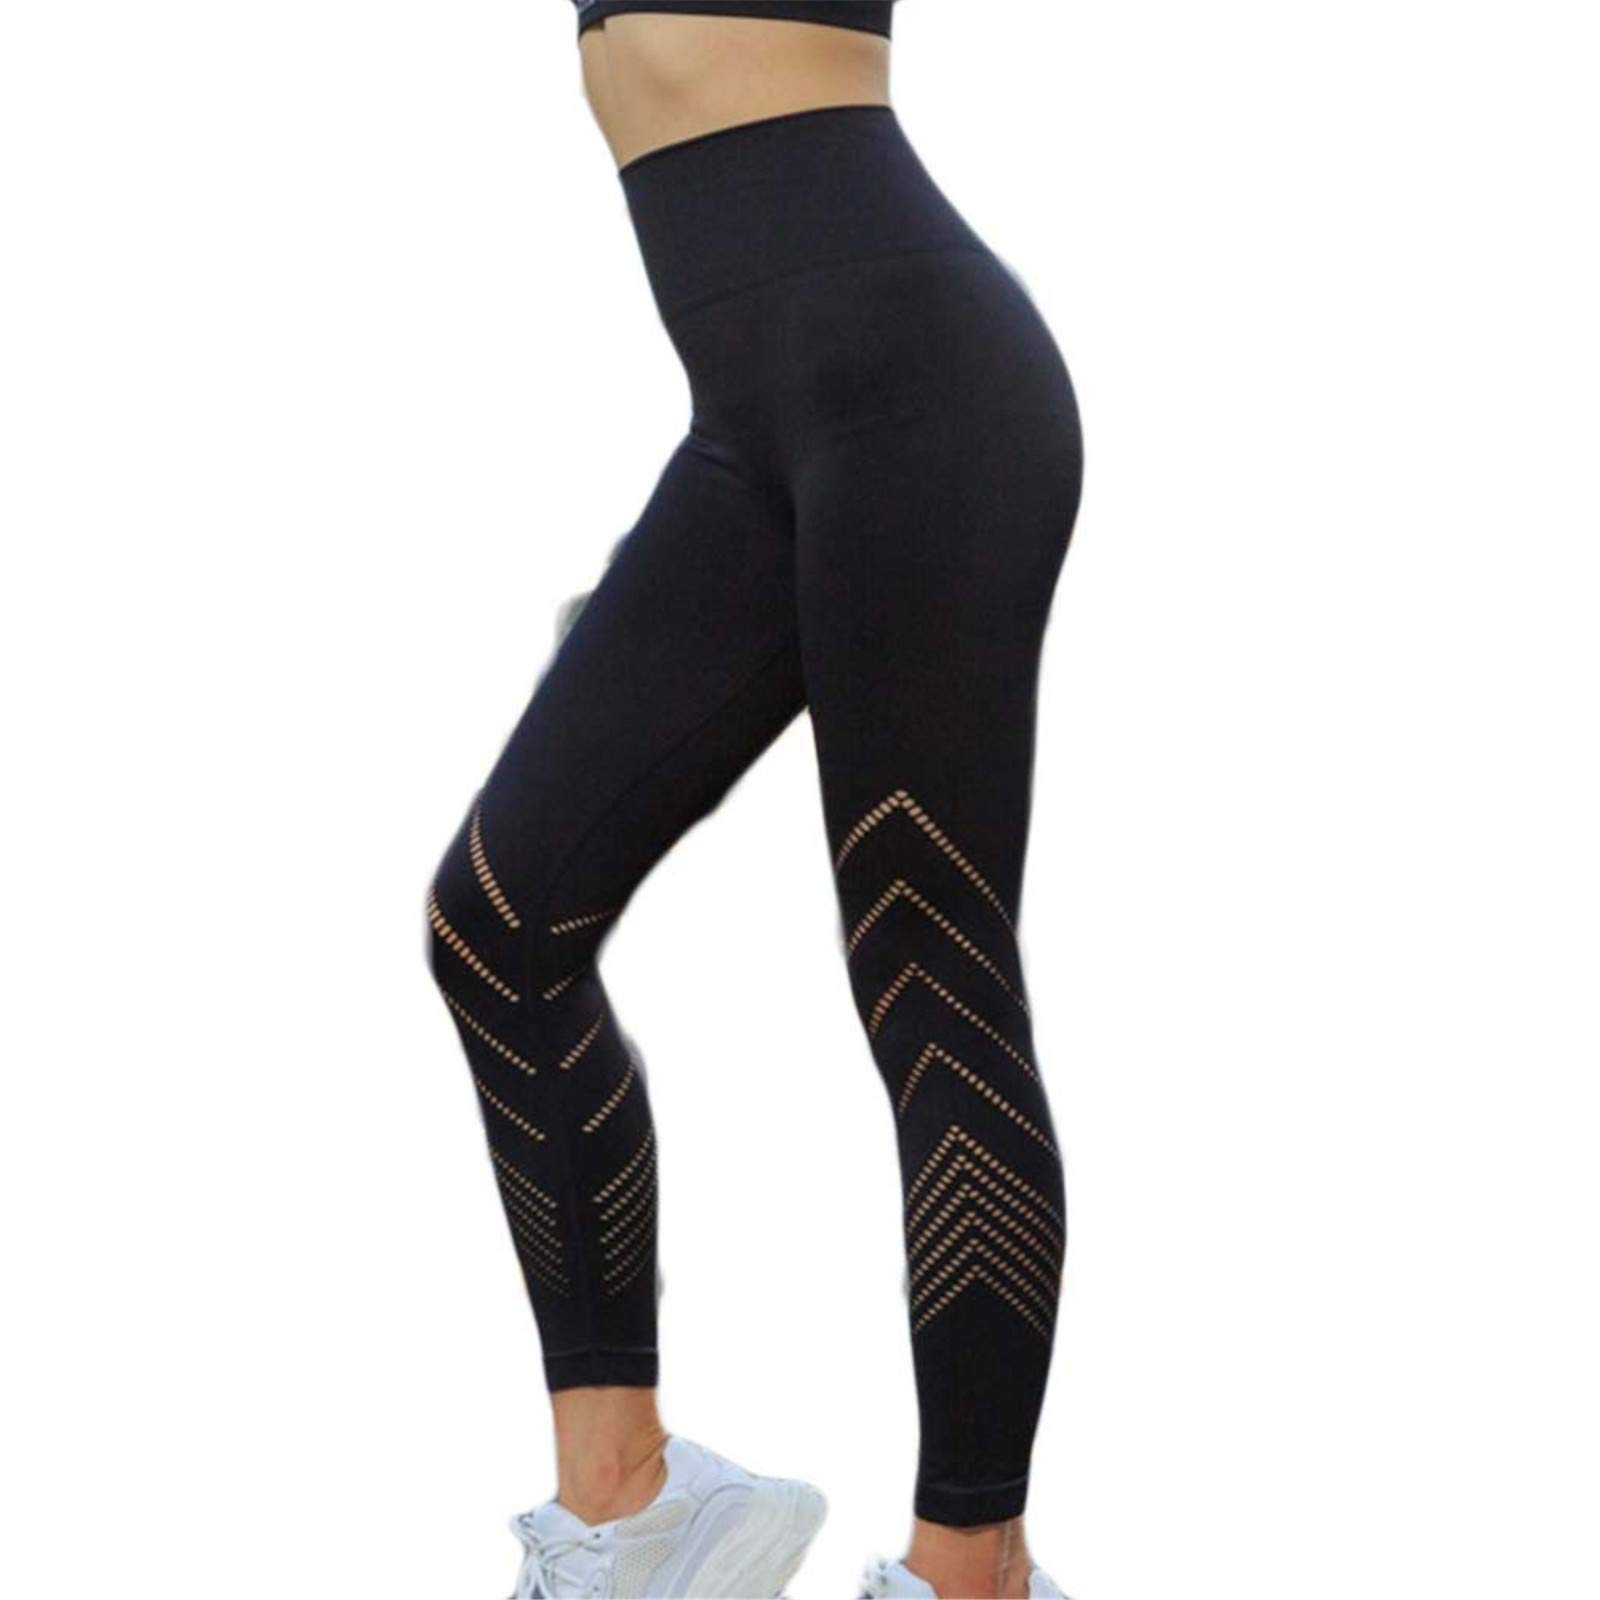 Thenxin Womens Compression Slimming Yoga Leggings High Wasit Tummy Control Quick-Dry Sport Tights(Black,L)